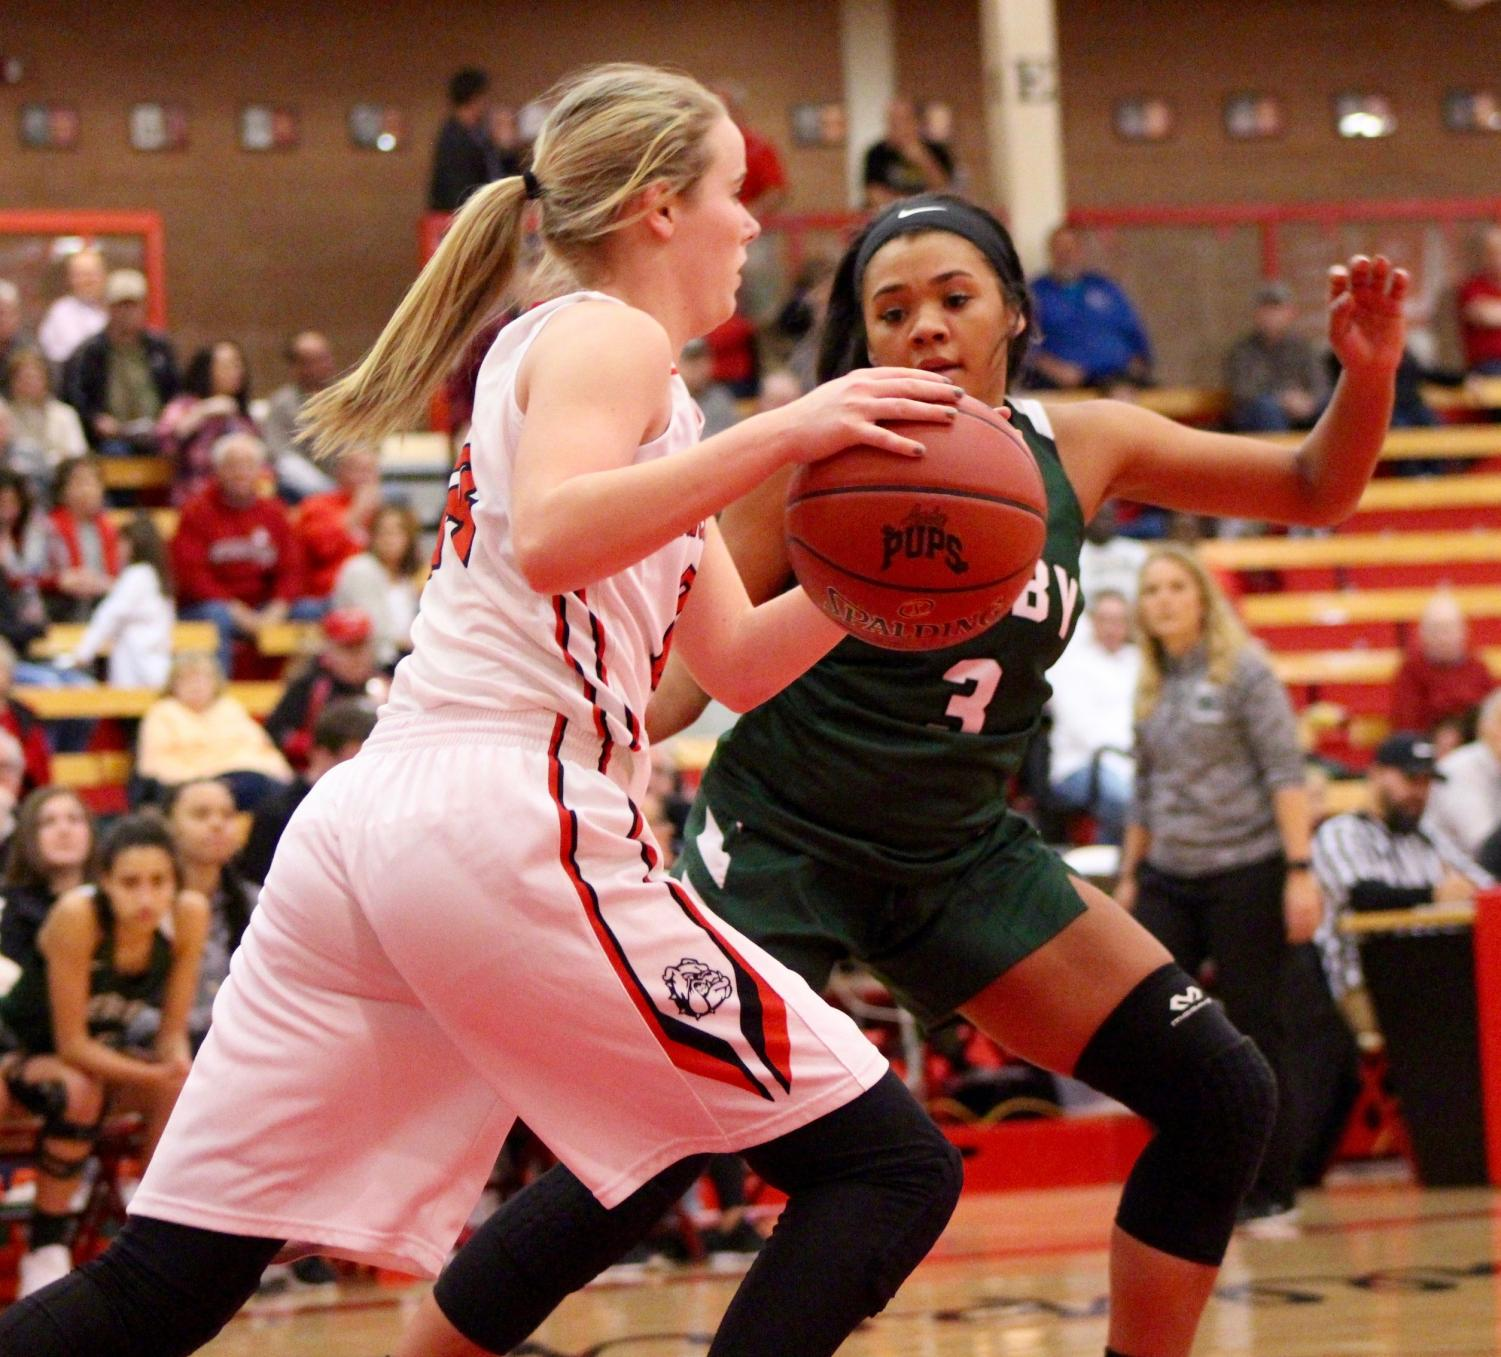 Junior+Aliyah+Meyers+thinks+about+how+to+get+the+ball+from+her+opponent.